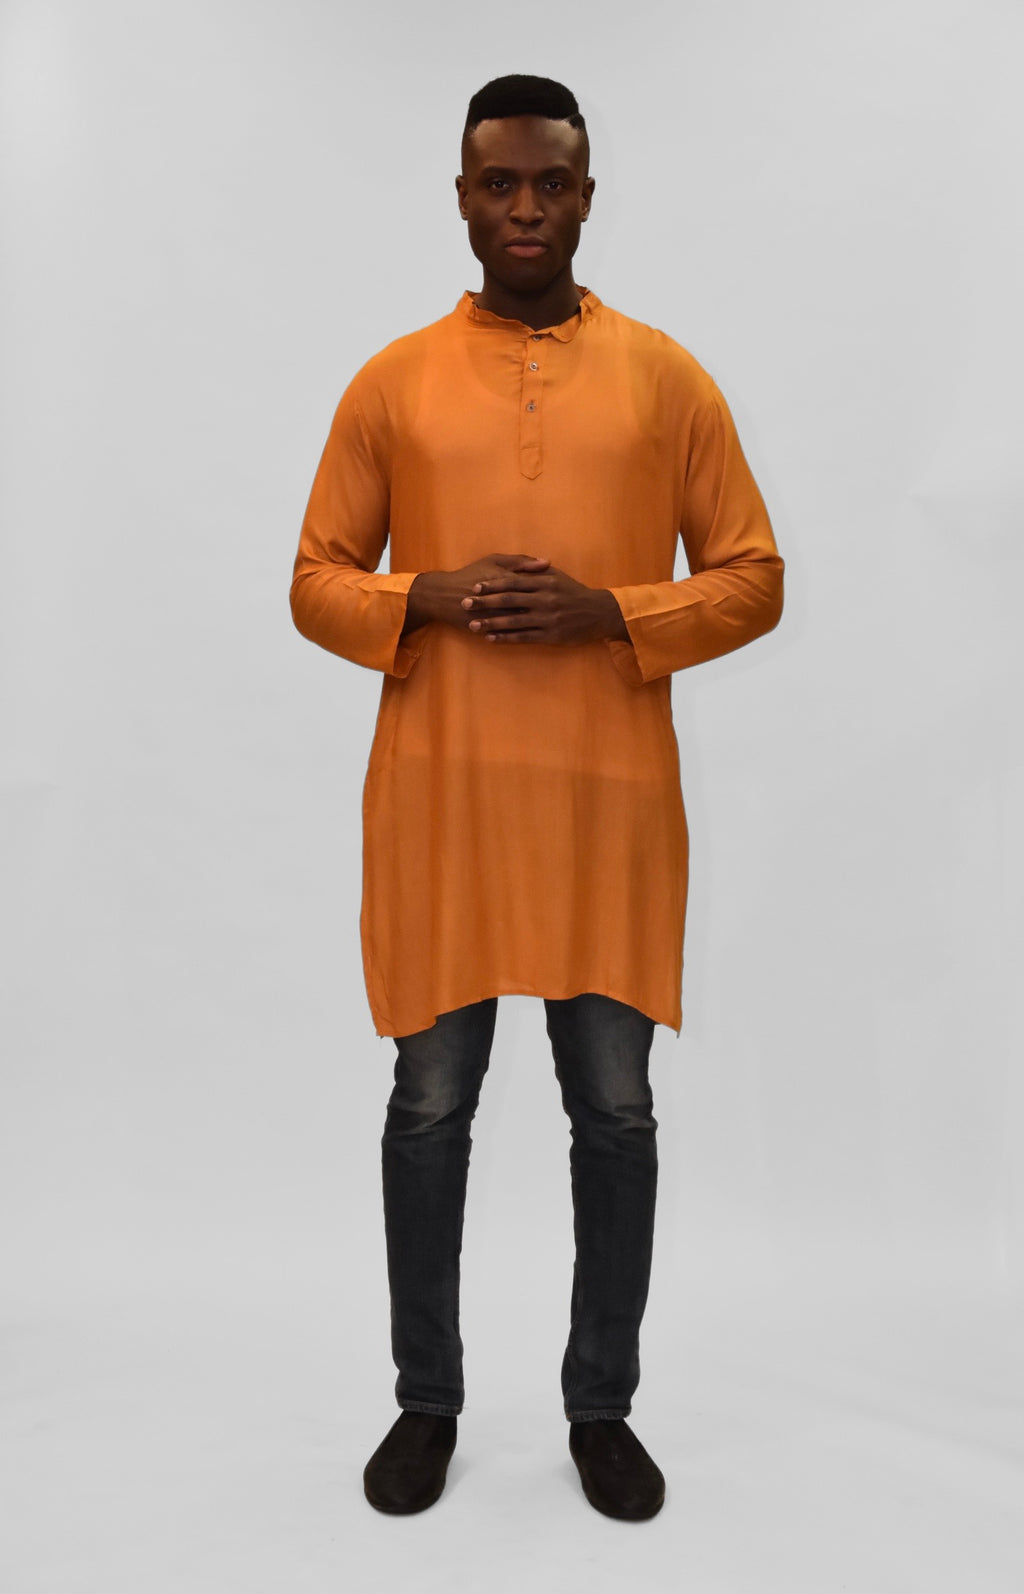 Soft Cotton Knee Length Squash Orange/ Gold Kurta